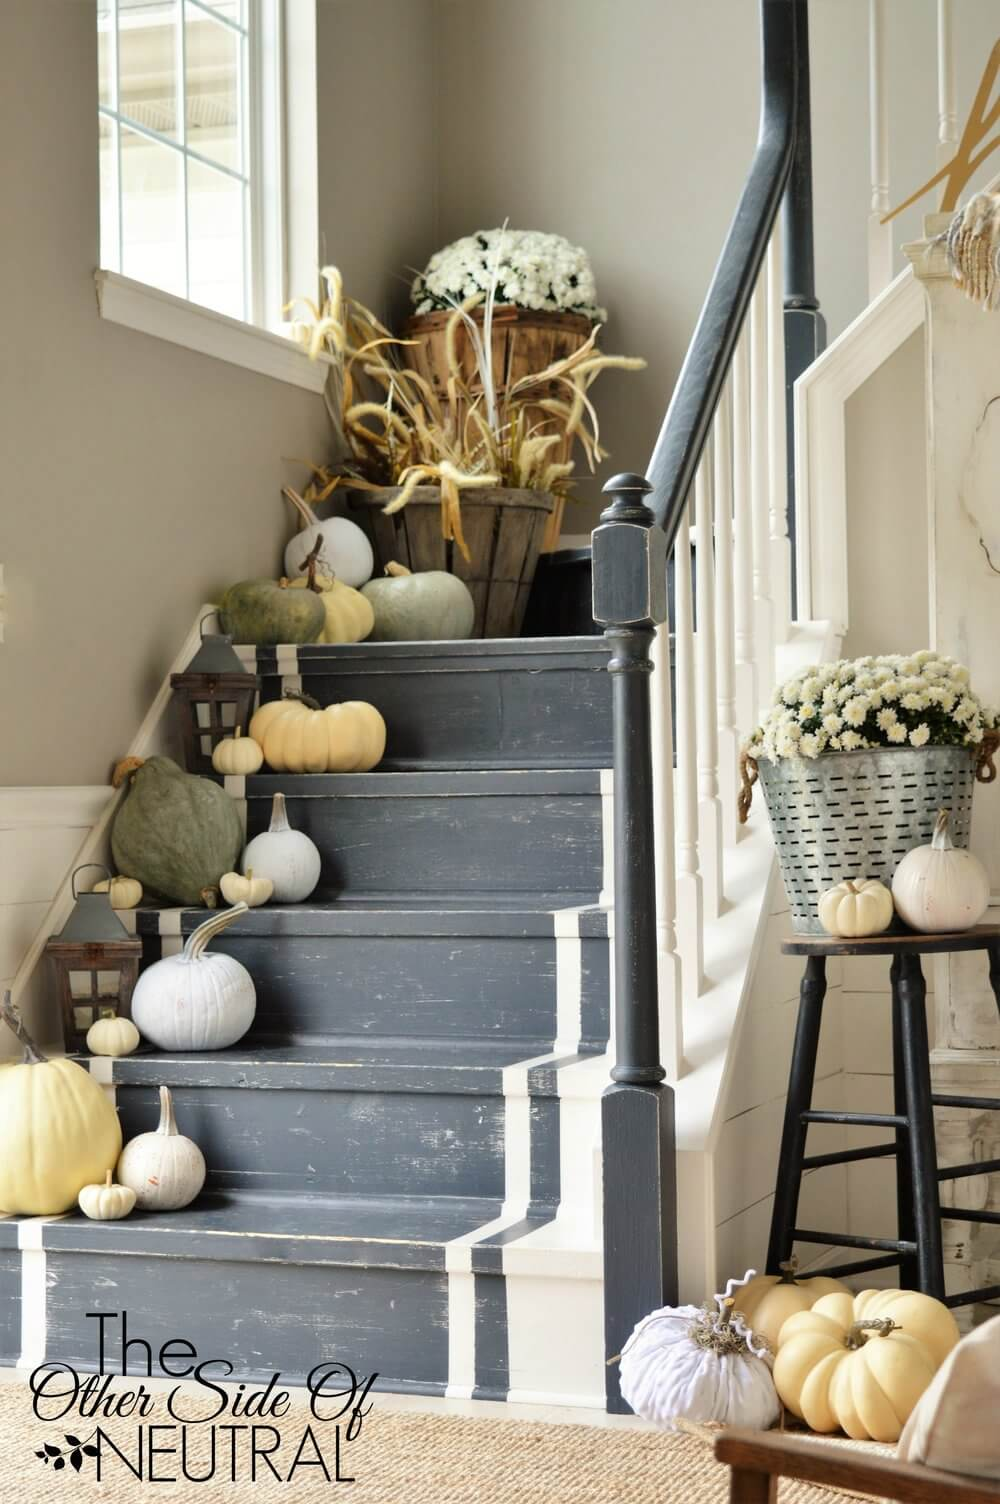 Organic Decorations on the Stairs